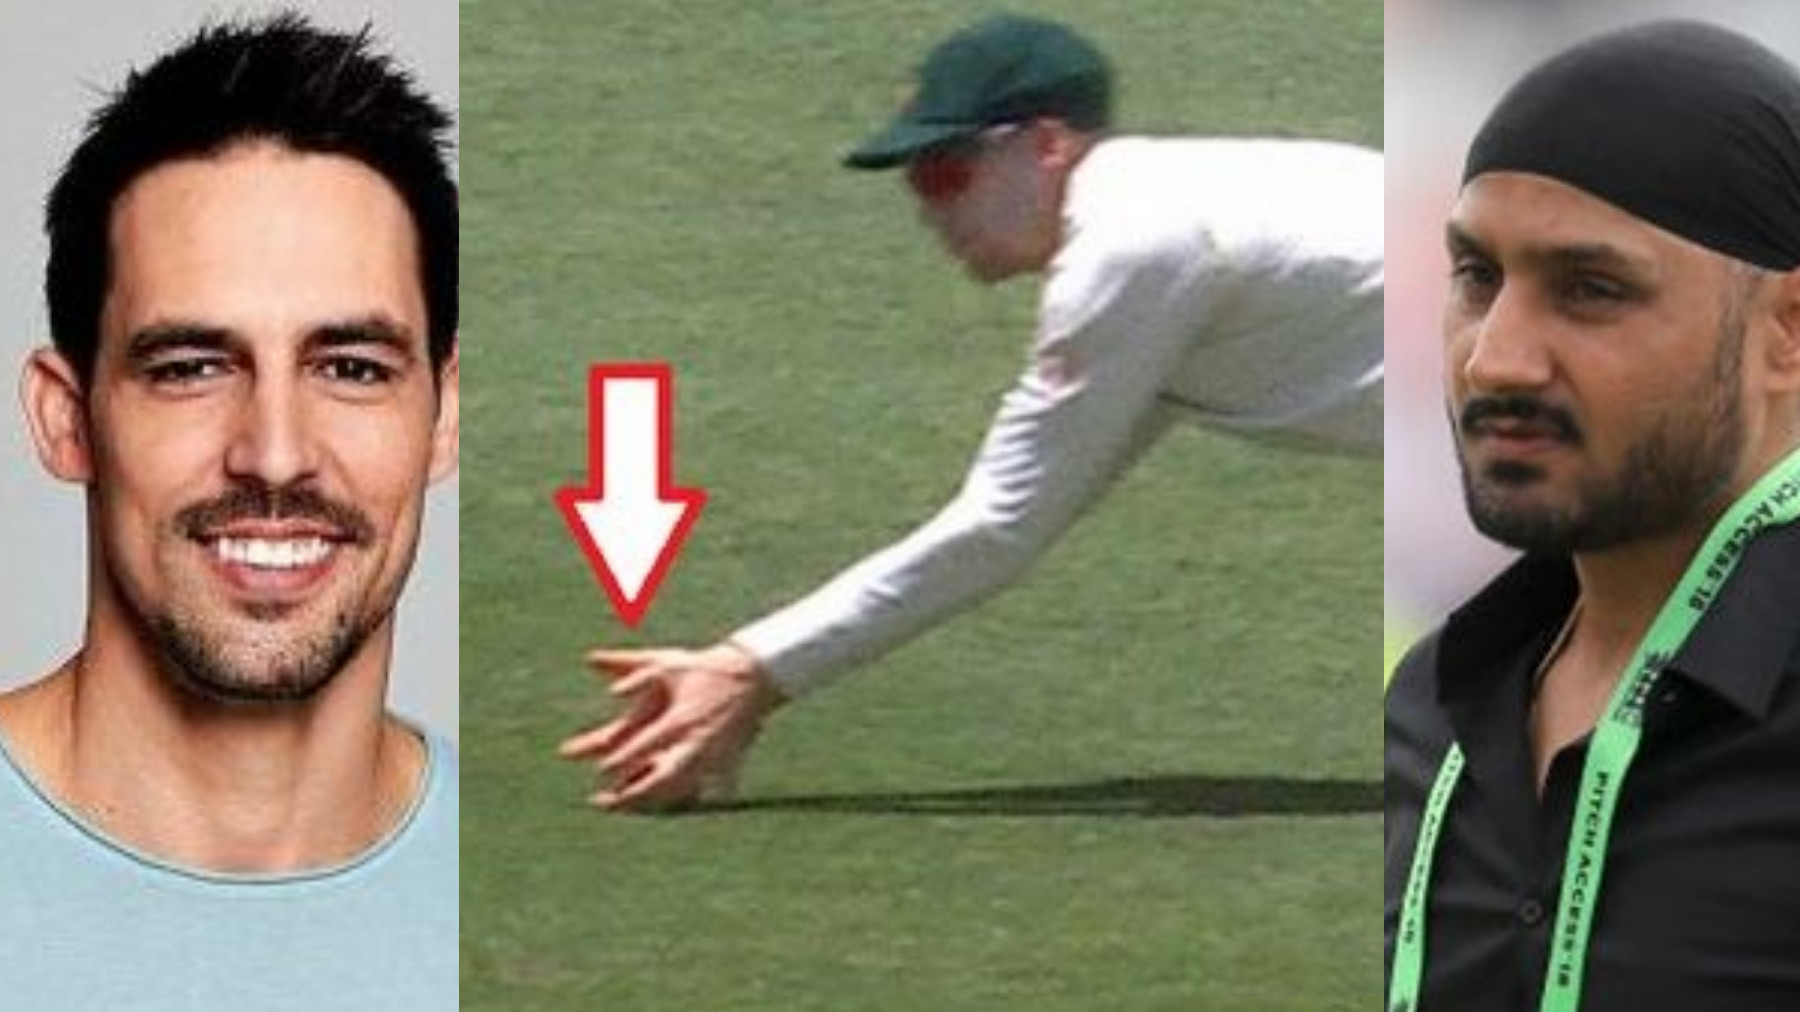 AUS v IND 2018-19: Cricket experts react to Virat Kohli's controversial dismissal to a contentious catch